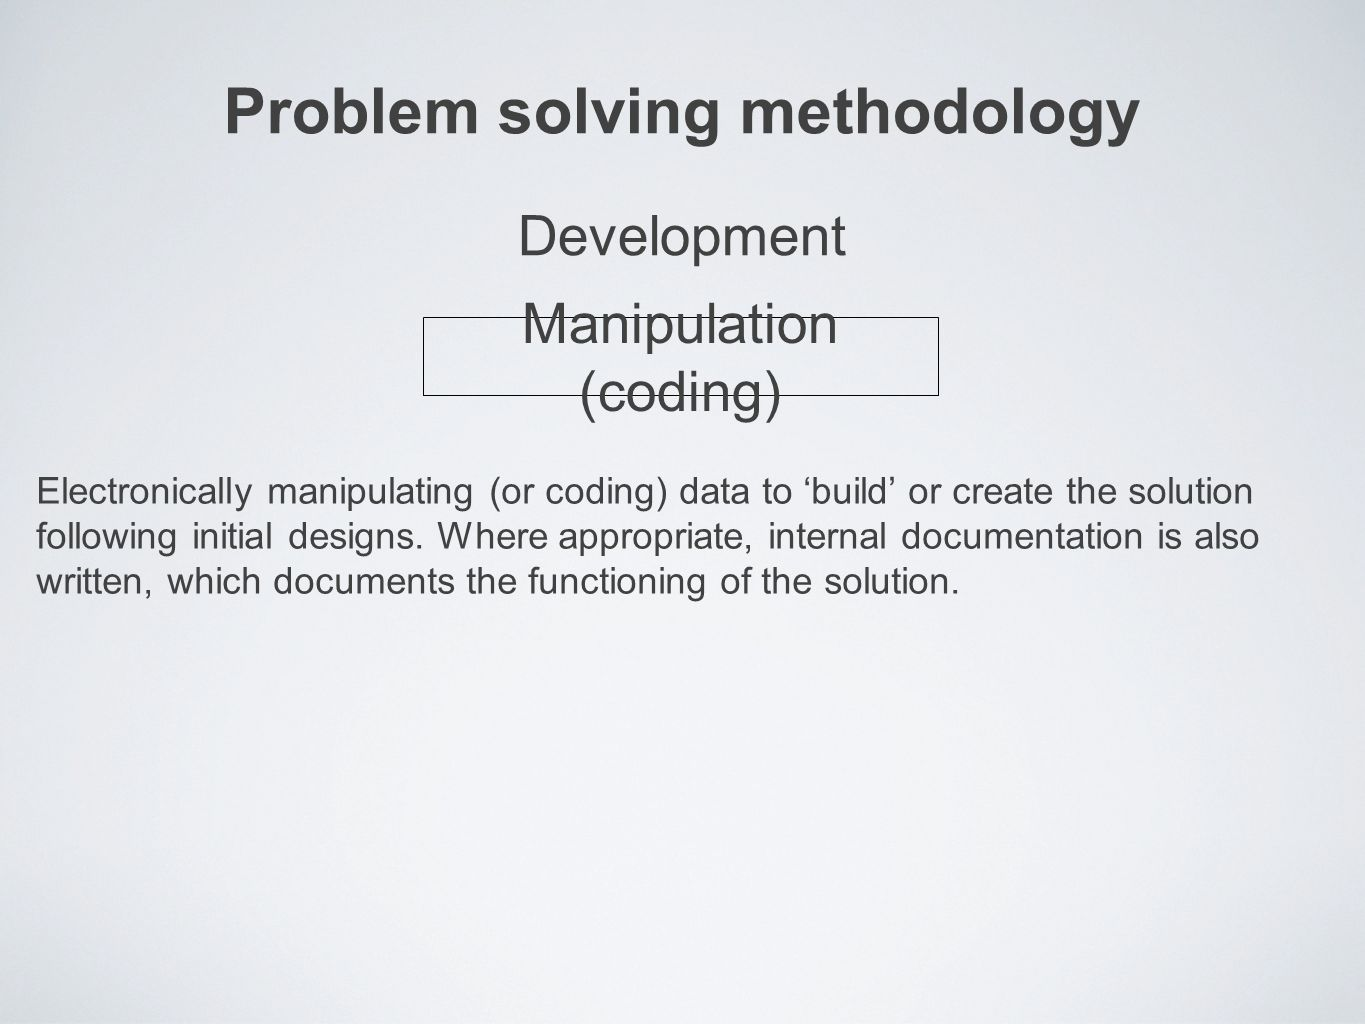 Problem solving methodology Electronically manipulating (or coding) data to 'build' or create the solution following initial designs.